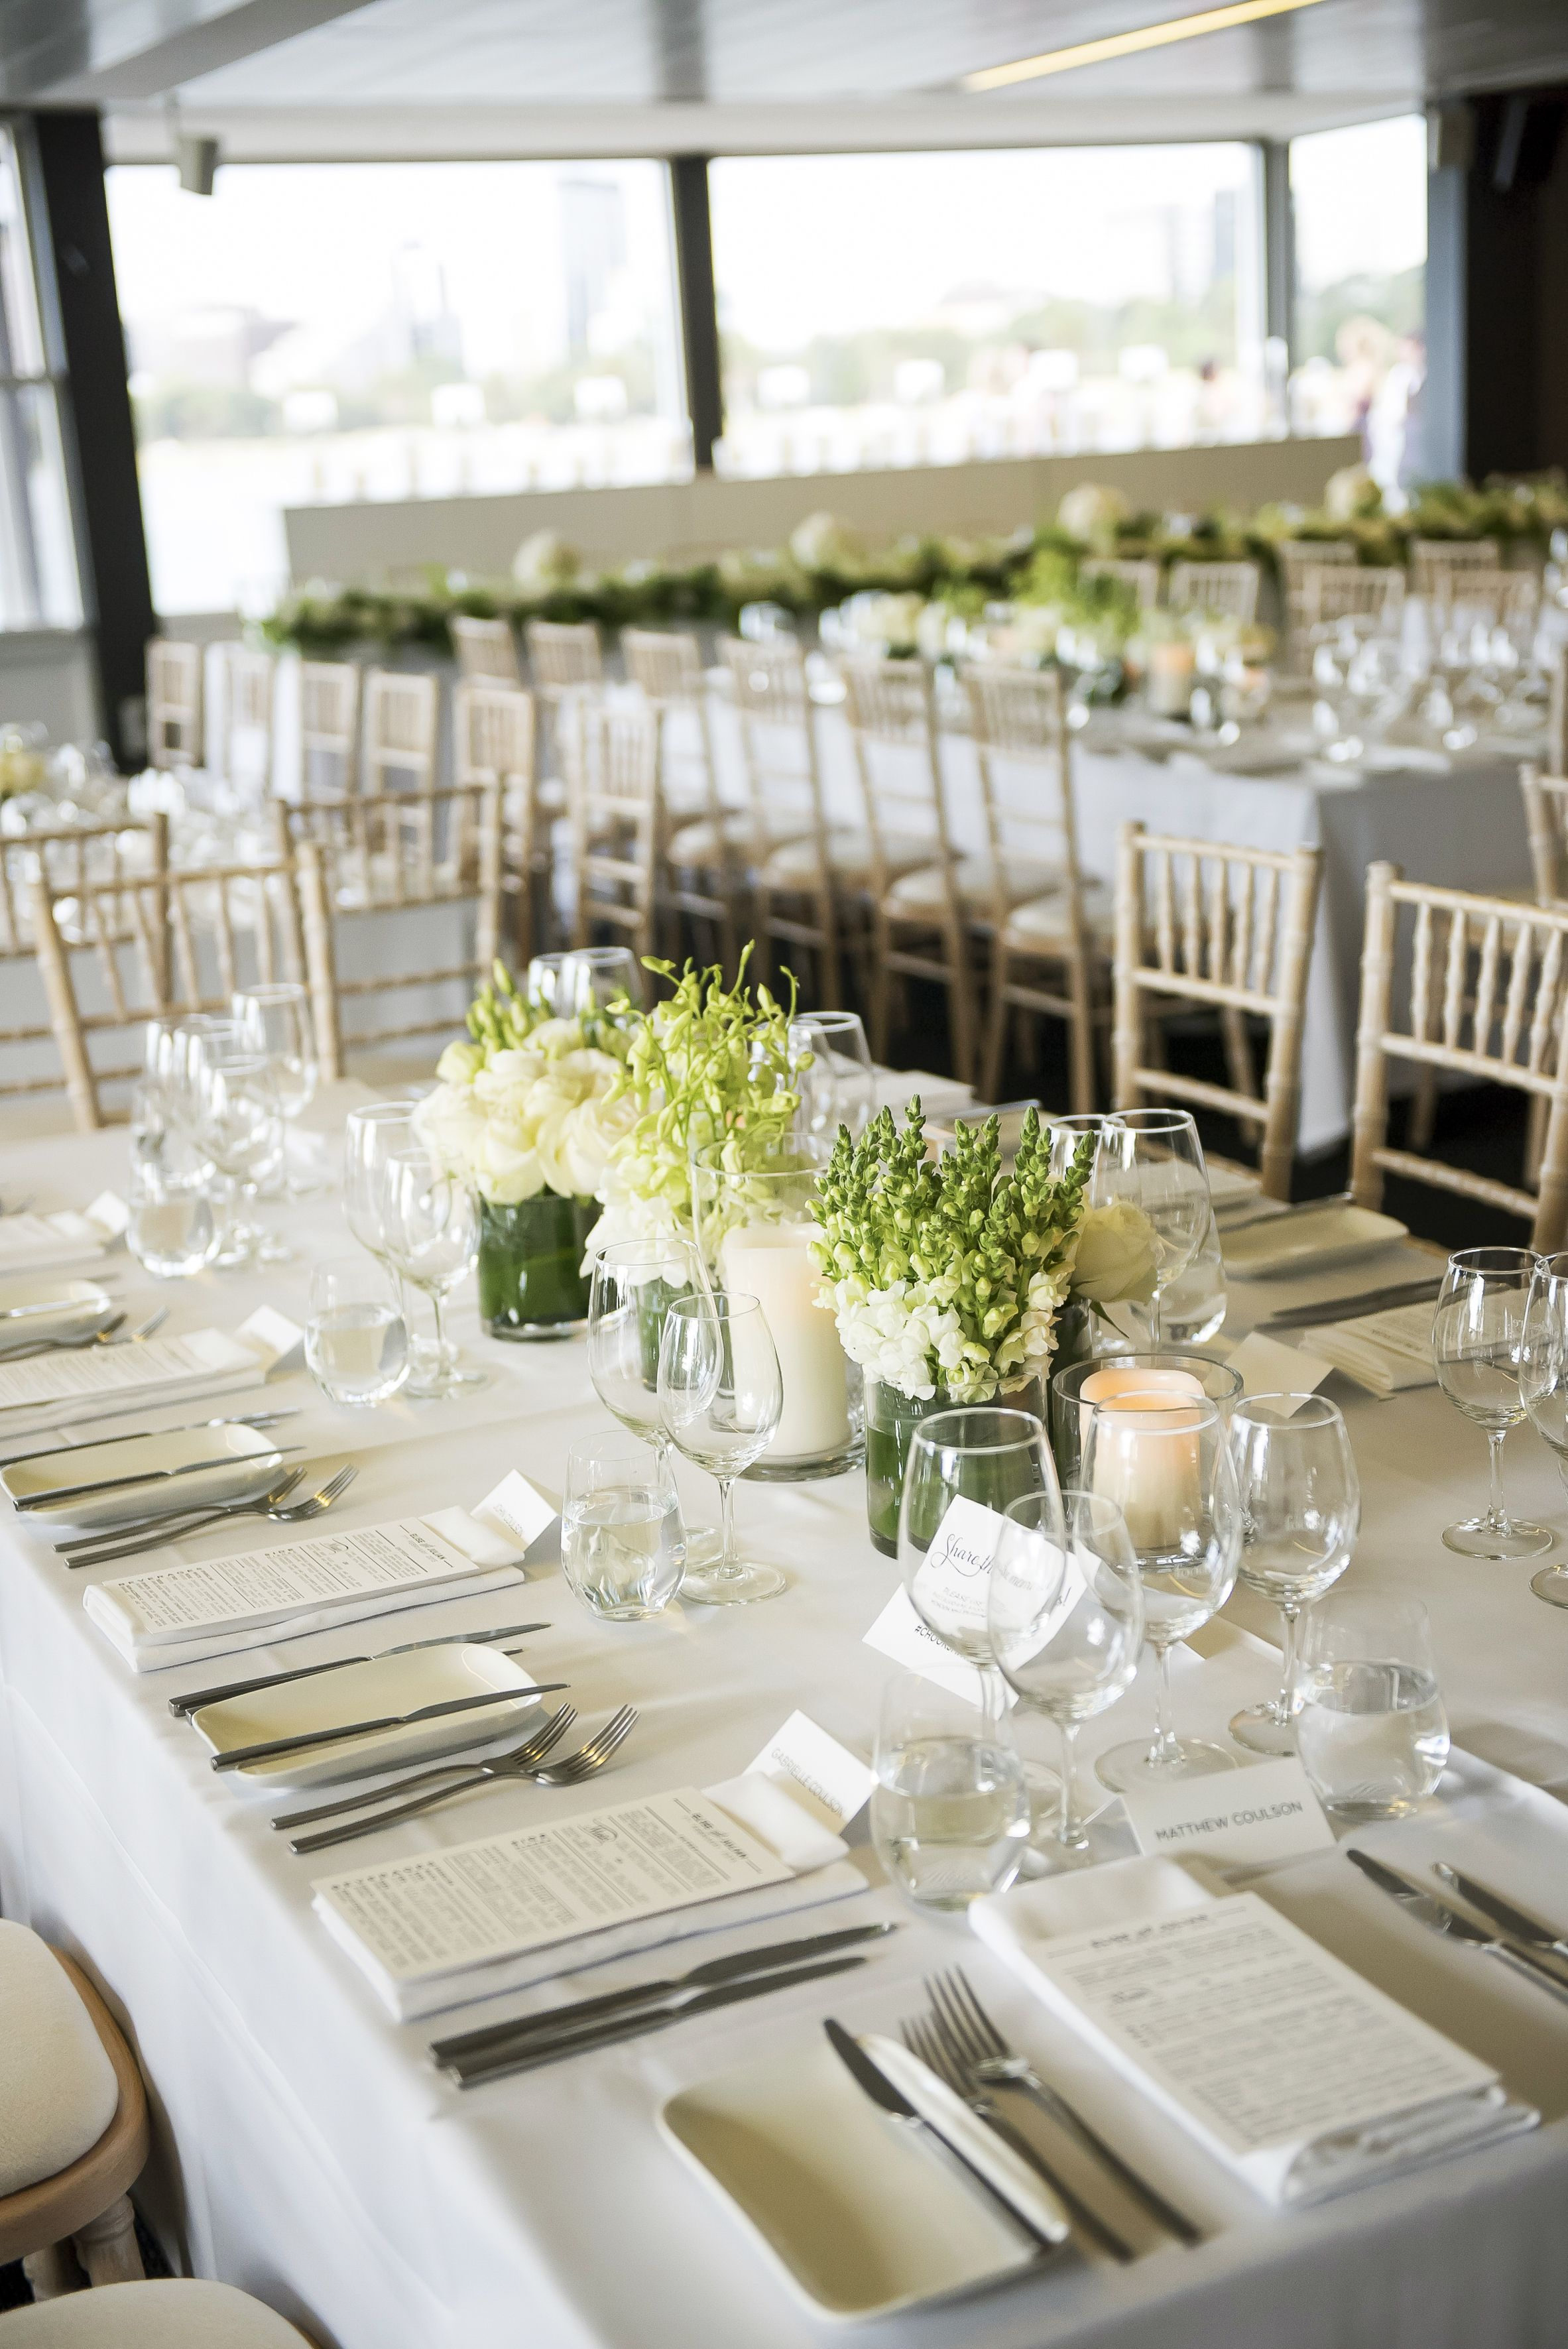 White and green wedding table setting ideas | itakeyou.co.uk